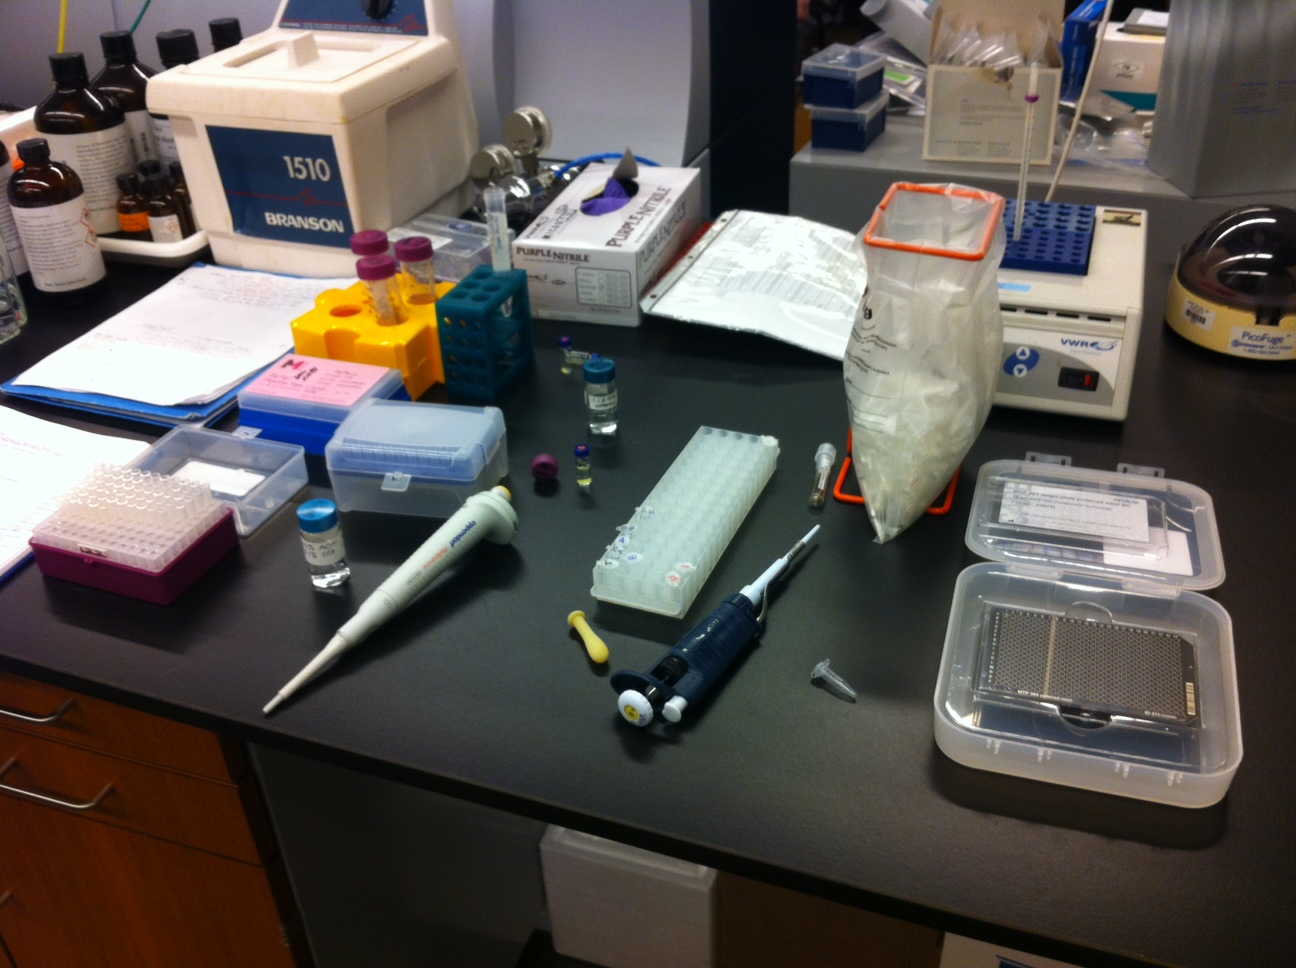 The sample prep area showing the equipment used, including the MALDI plate (lower right)